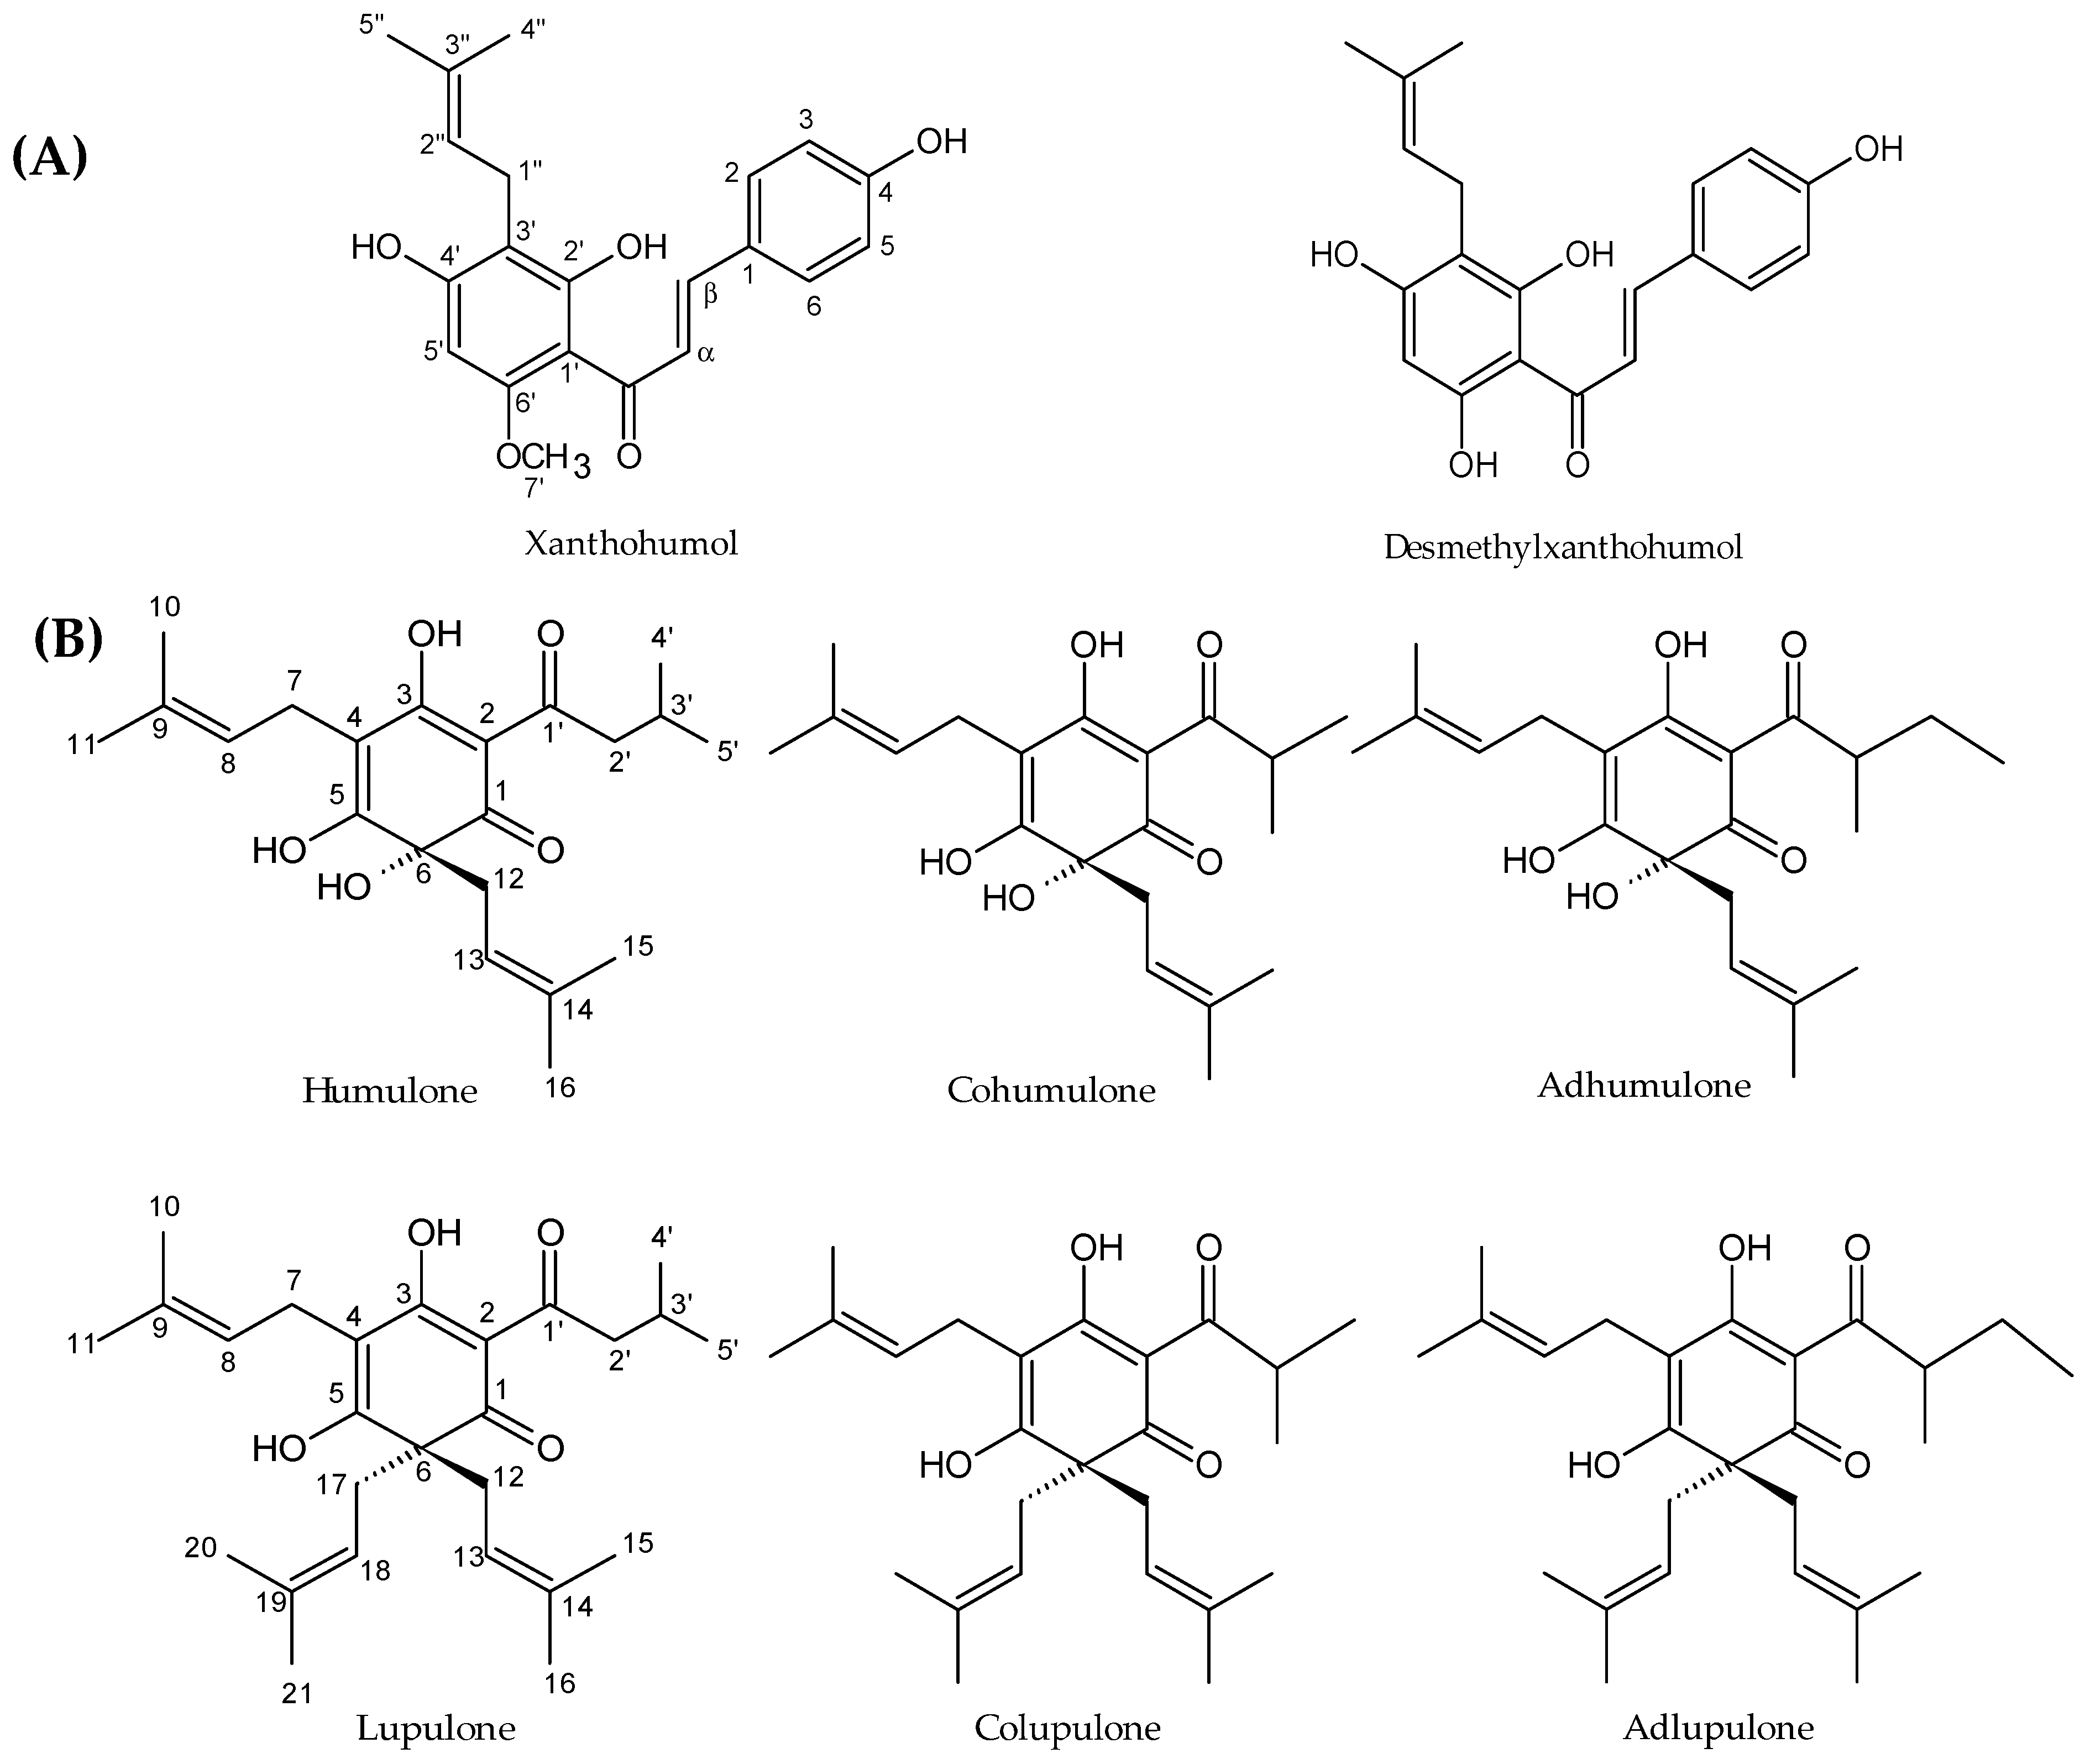 Molecules | Free Full-Text | Phenolic Compounds from Humulus